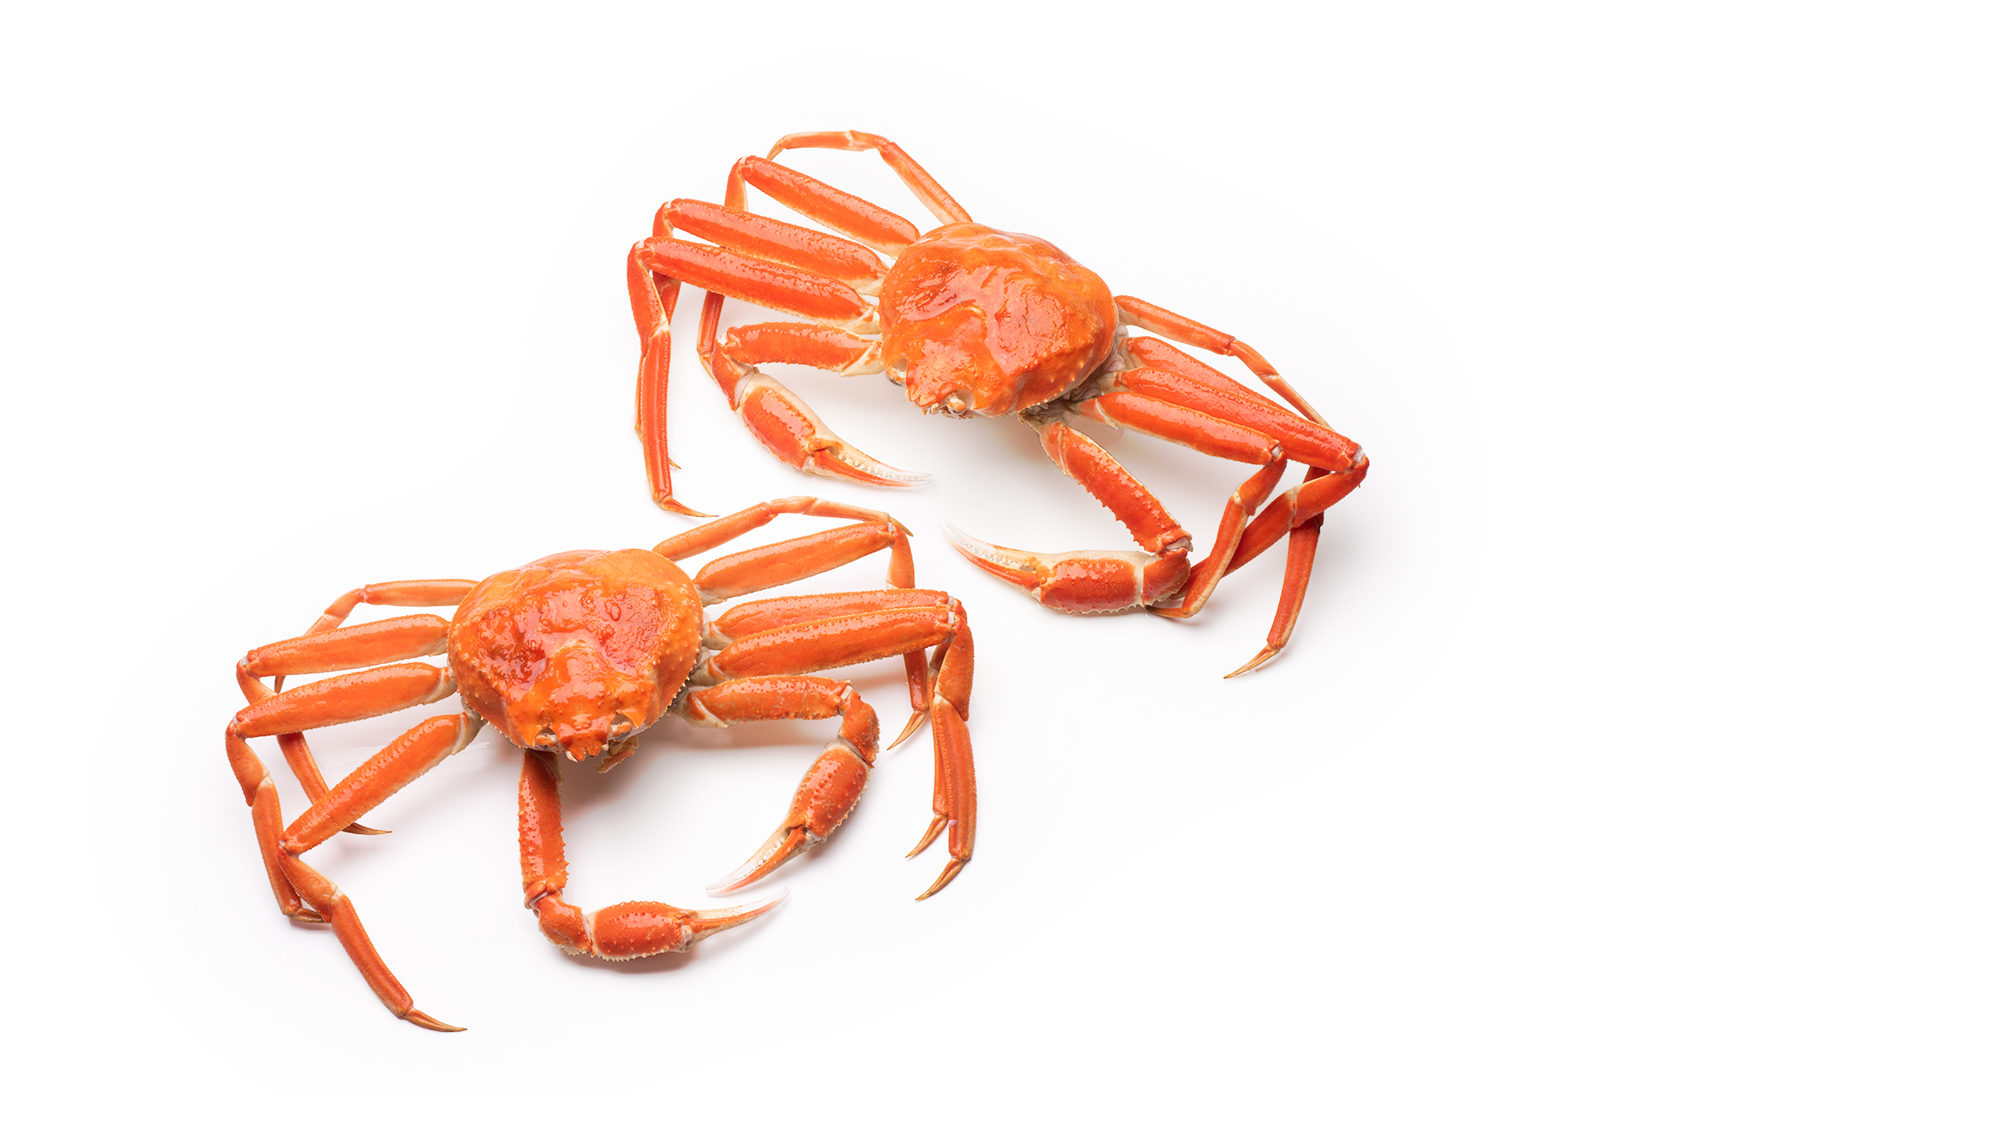 snow-crab-chionoecetes-opilio-product